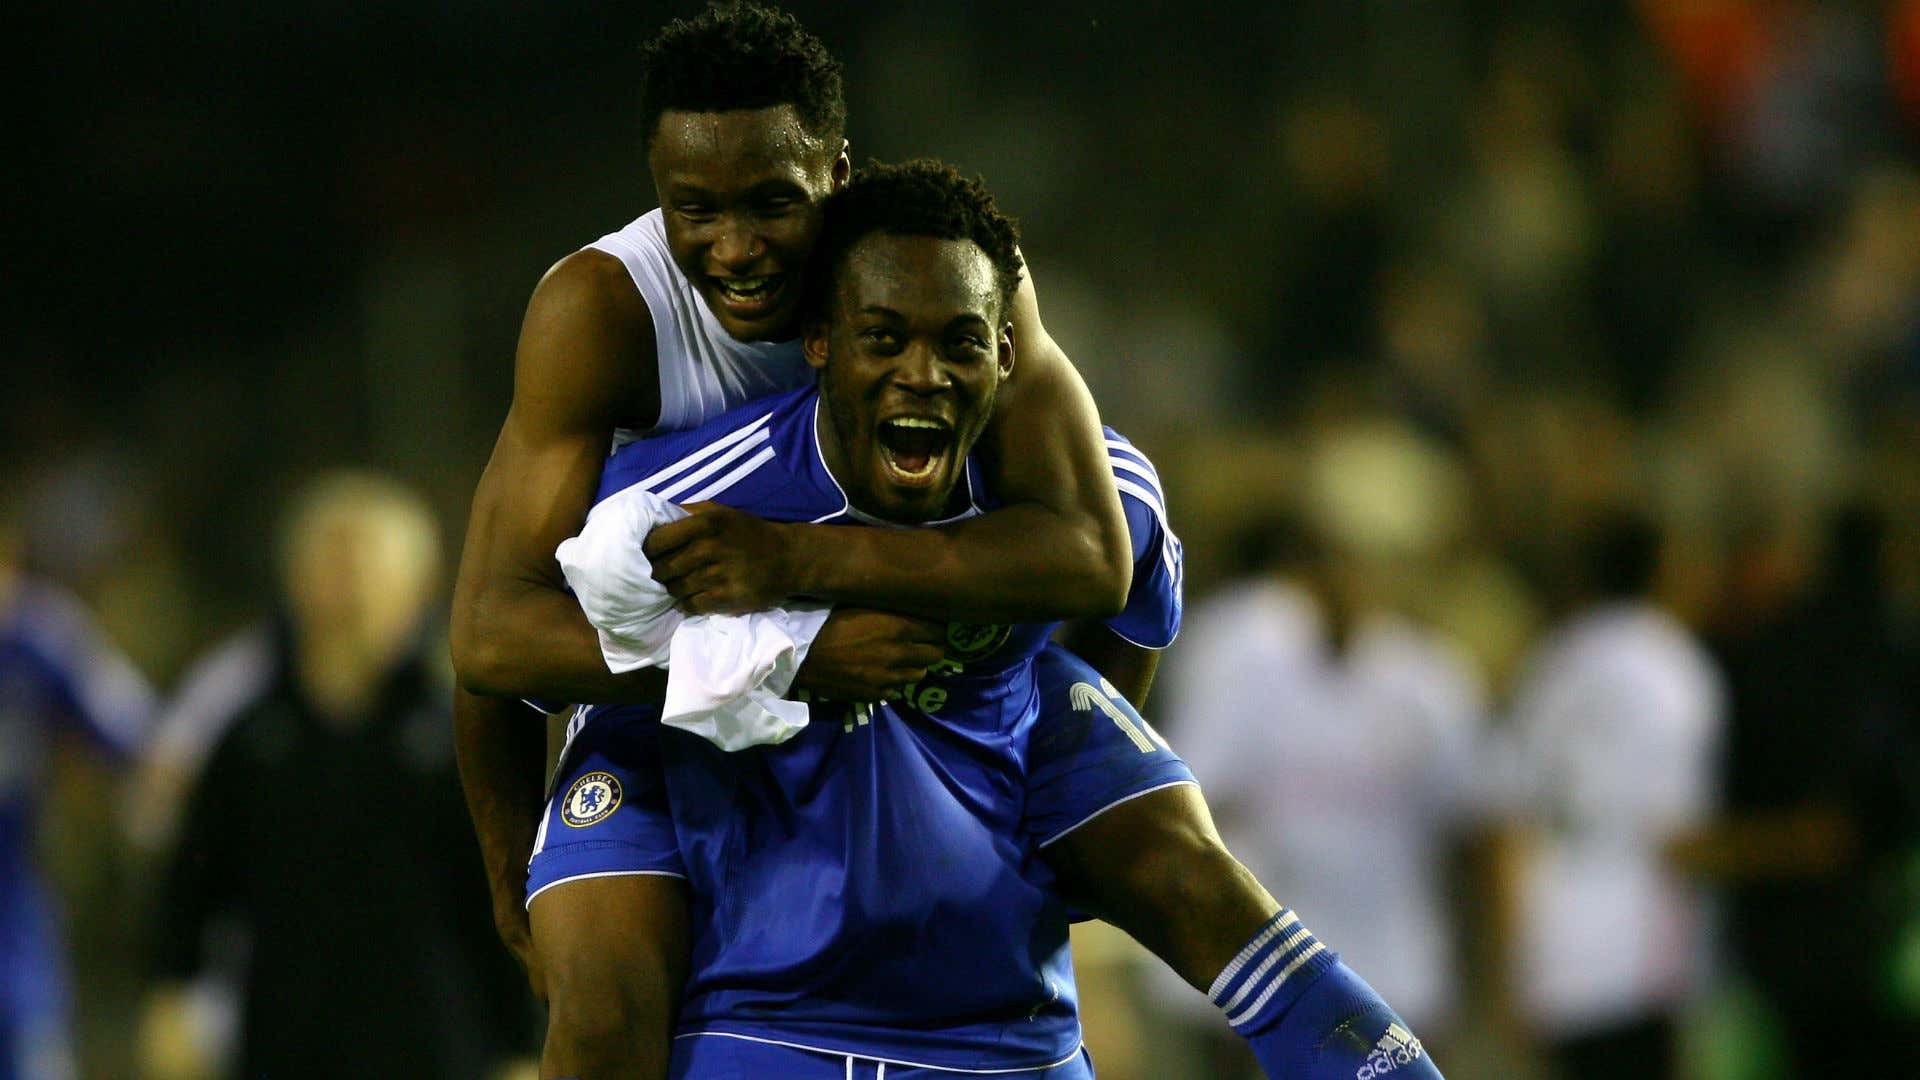 'He really helped me at Chelsea' – John Mikel Obi praises Michael Essien for supporting him during his early years at Chelsea